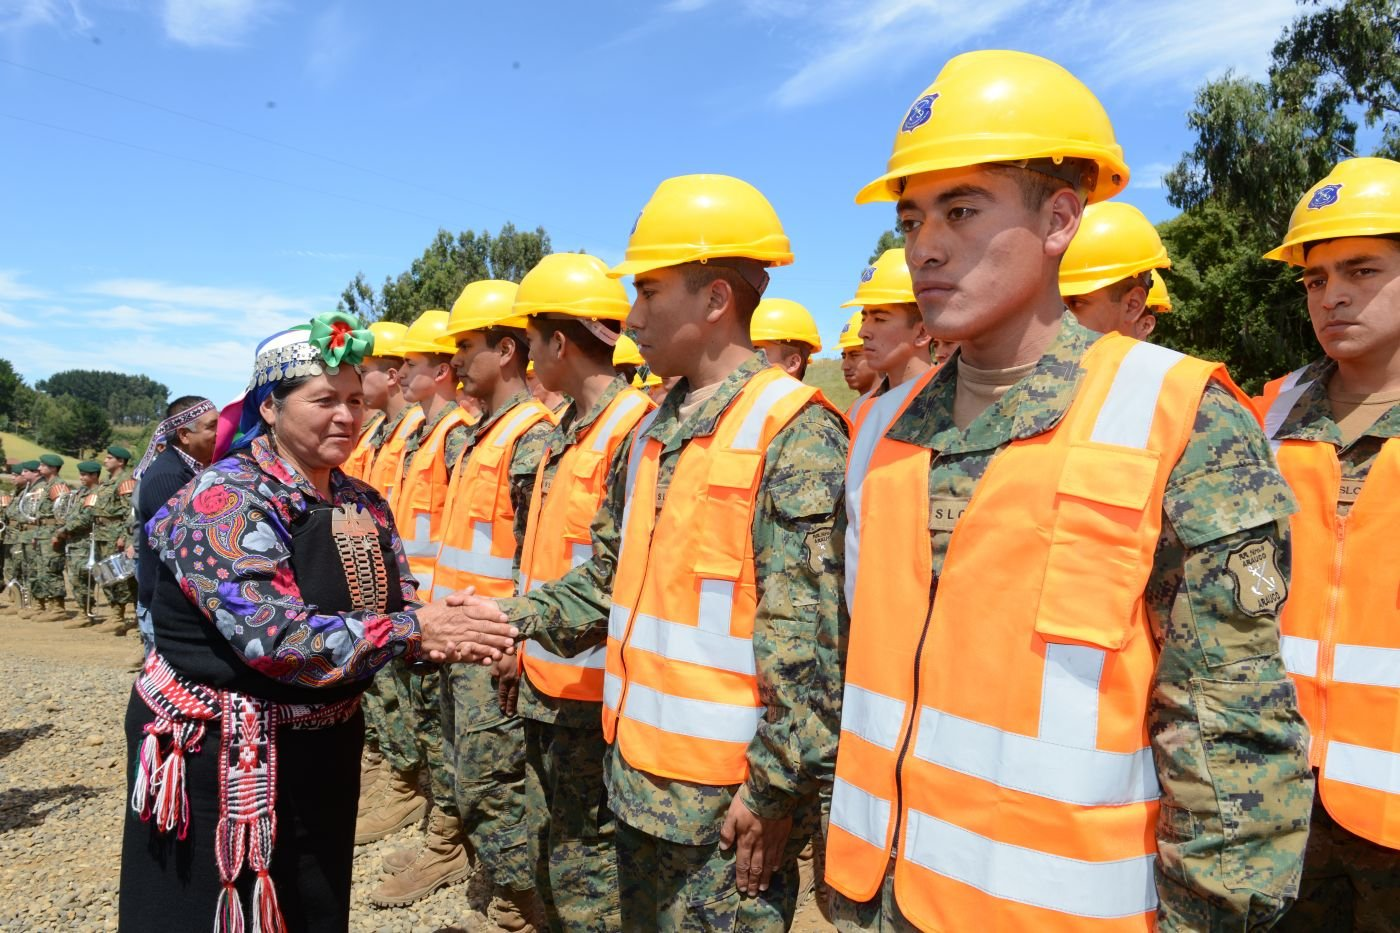 Chilean Armed Forces Encourage Indigenous Persons to Join Their Ranks